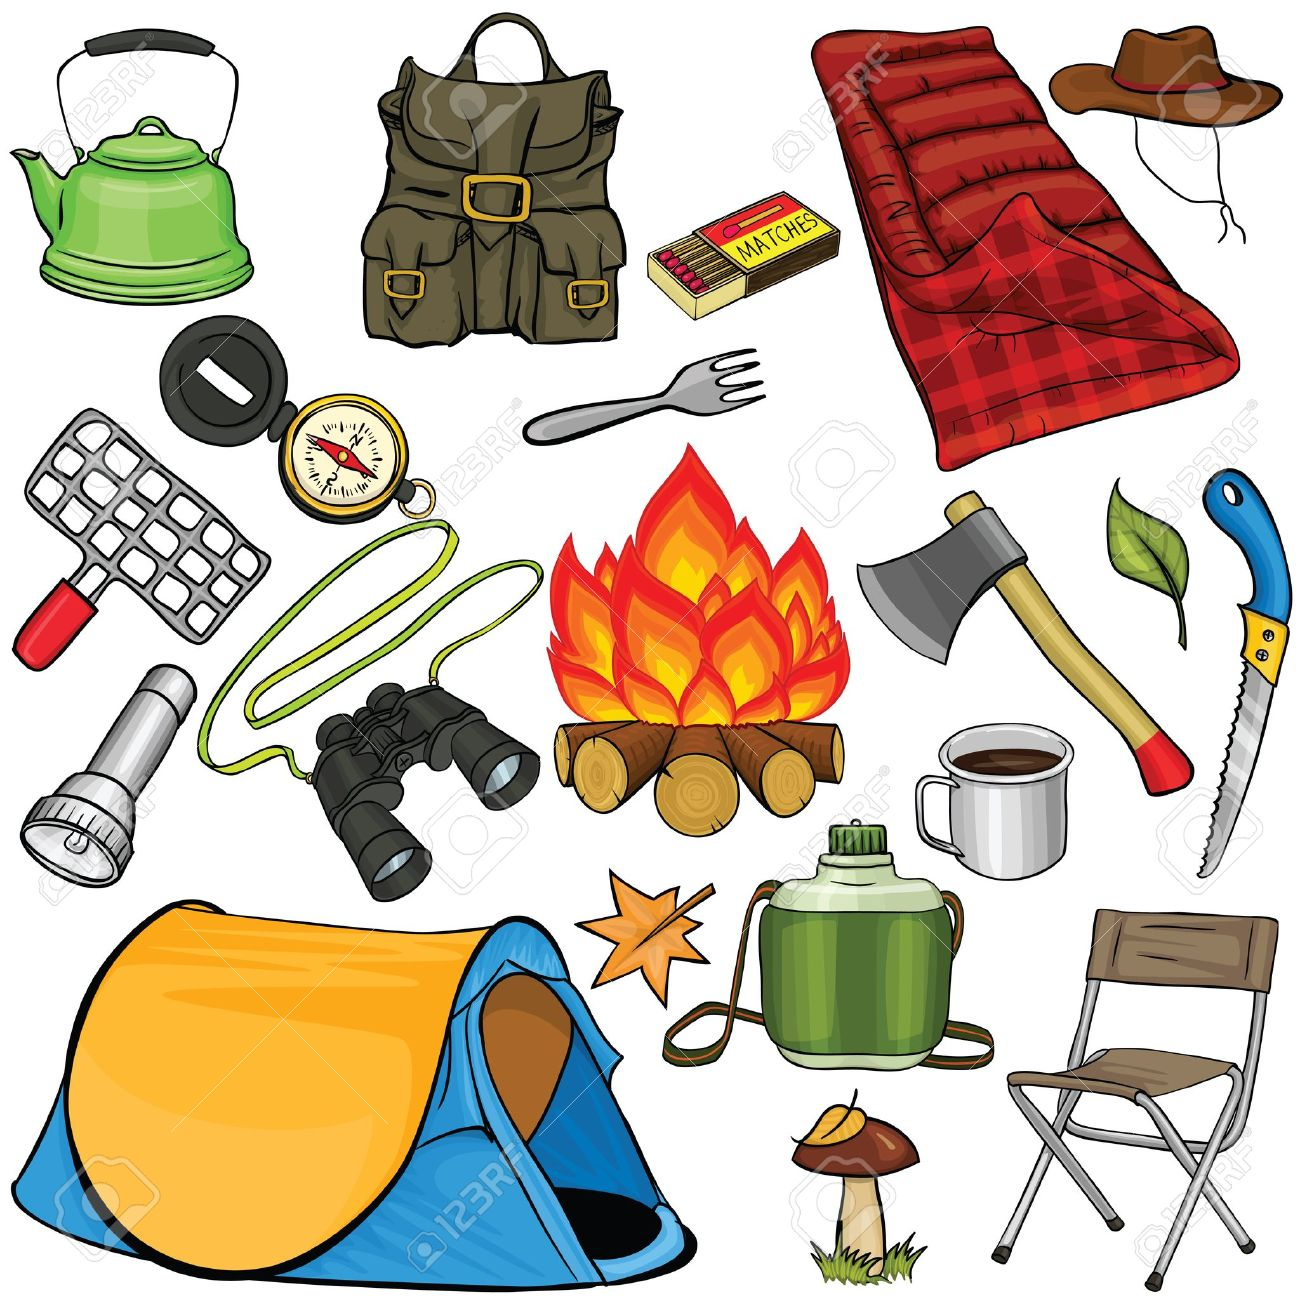 Hiking clipart camping gear Gear jpg camping style cartoon